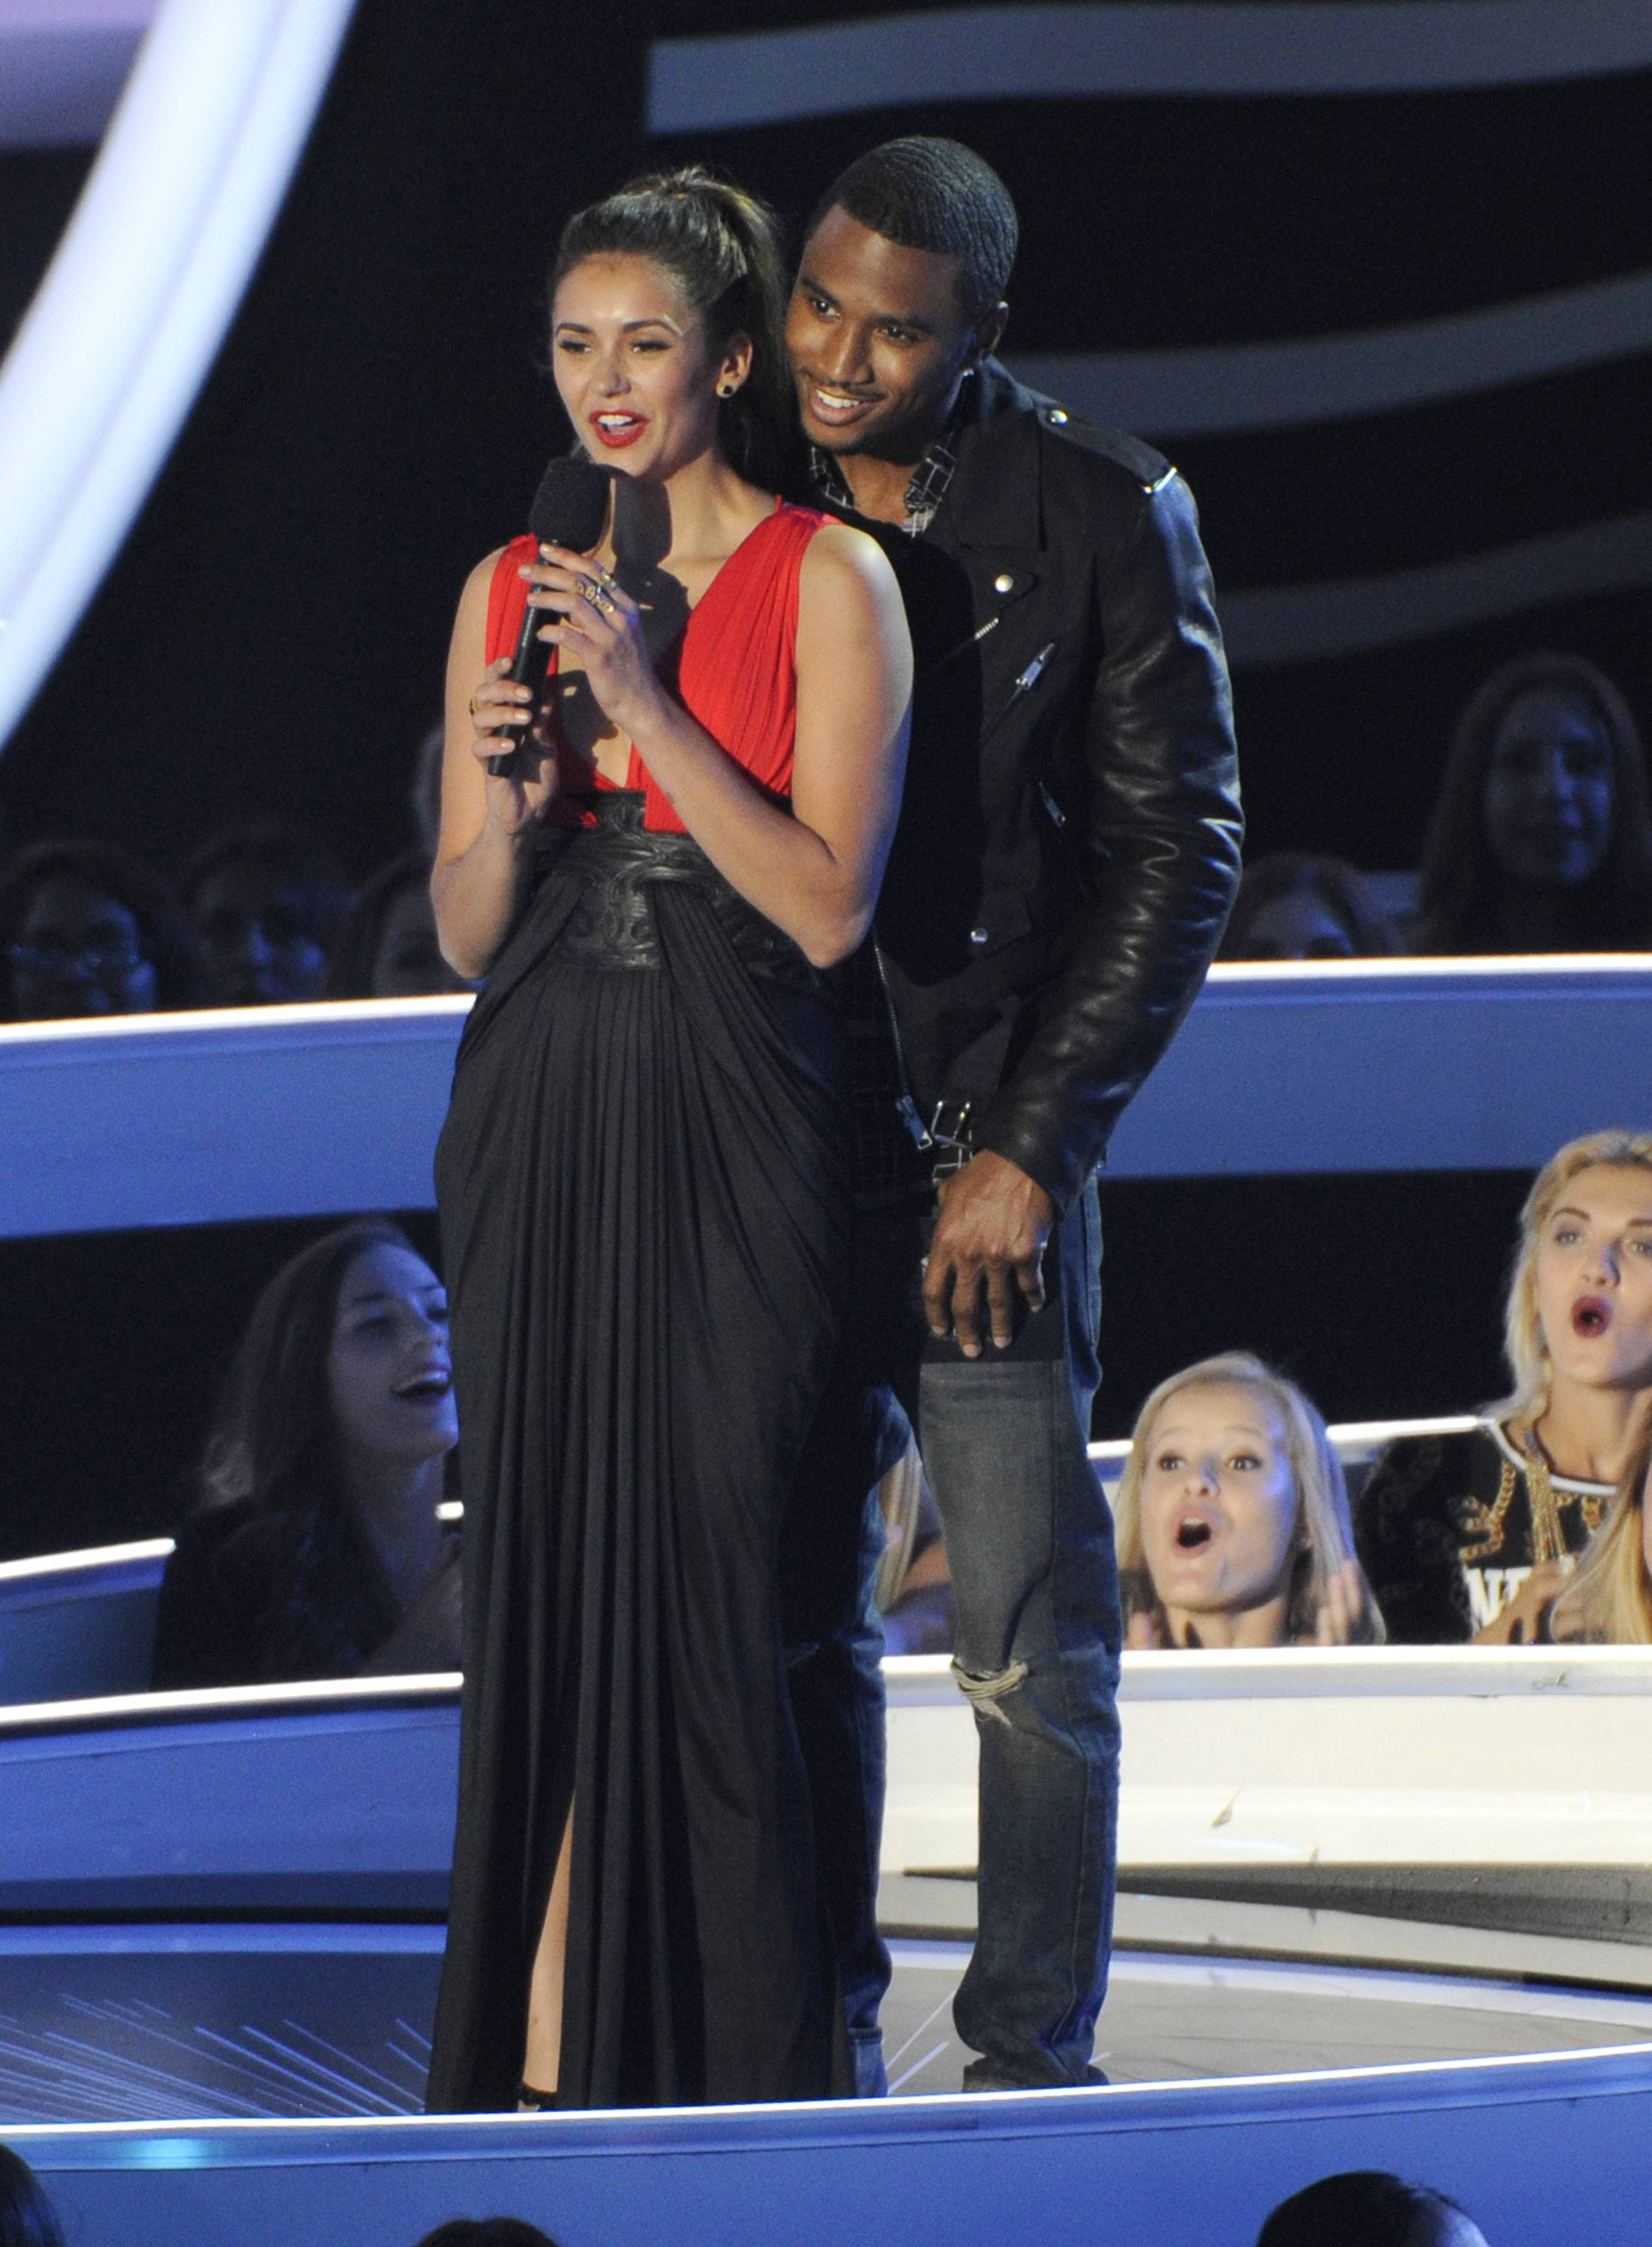 Nina Dobrev, left, and Trey Songz present the award for Best Rock Video at the MTV Video Music Awards.